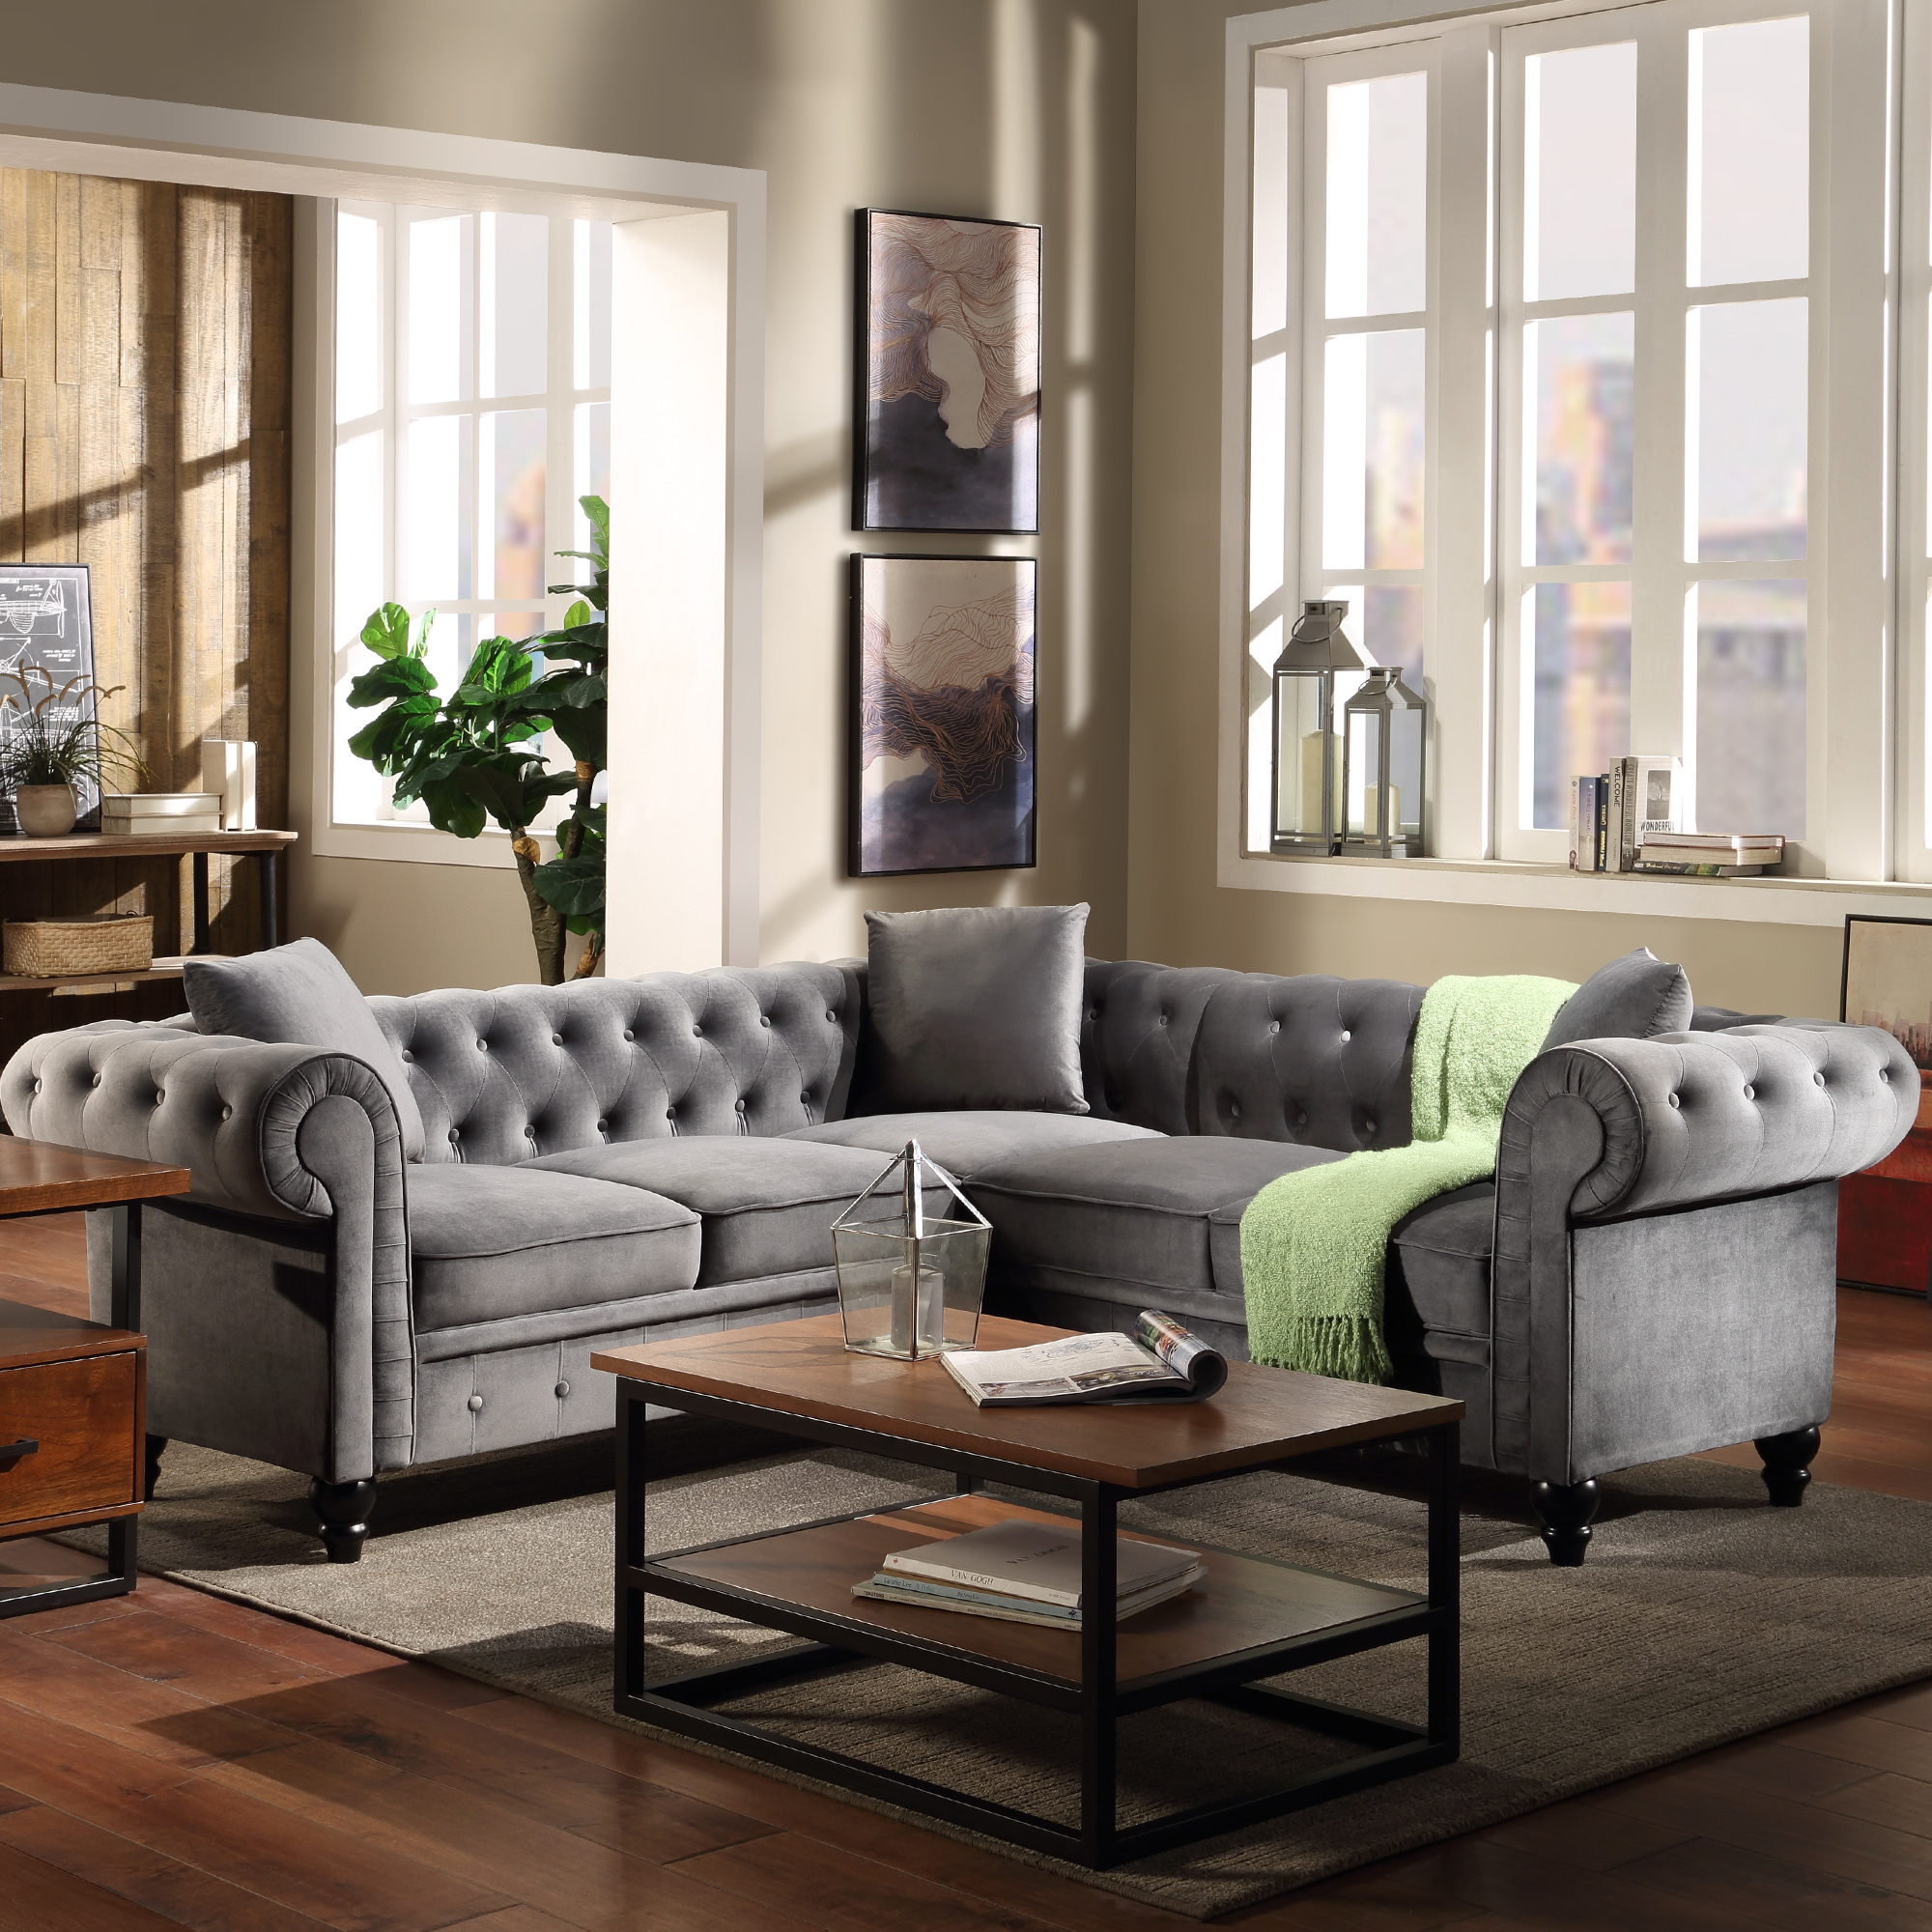 Fashionable Noa Sectional Sofas With Ottoman Gray Inside Chesterfield Sofa For Living Room, Mid Century L Shape (View 18 of 20)